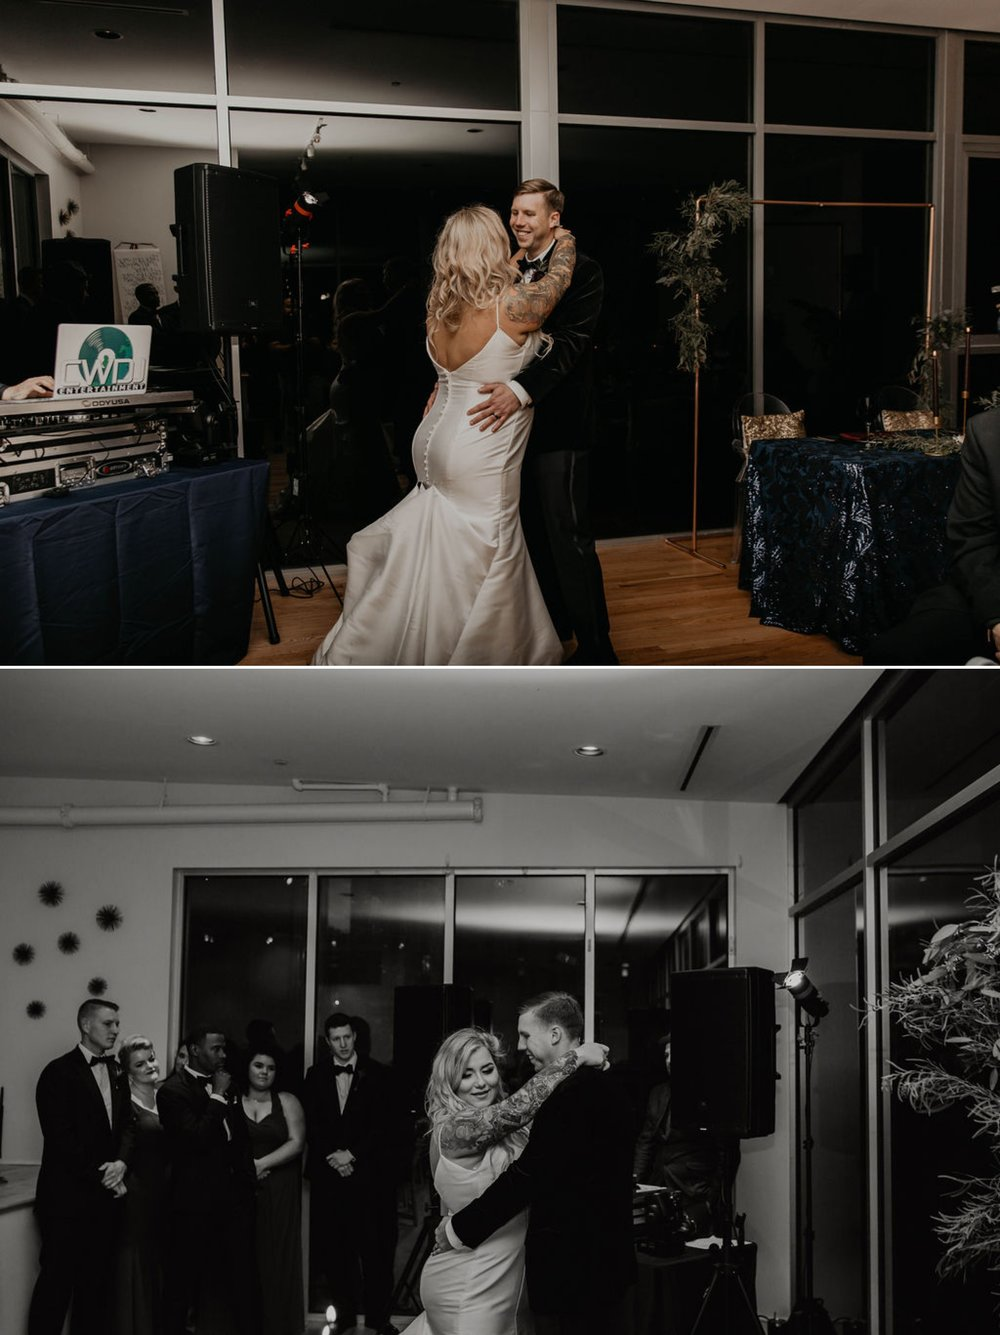 First dance between bride and groom - Matt Smarsh and Johanna Dye - suites by the black tux - Raleigh North Carolina Urban Downtown Wedding